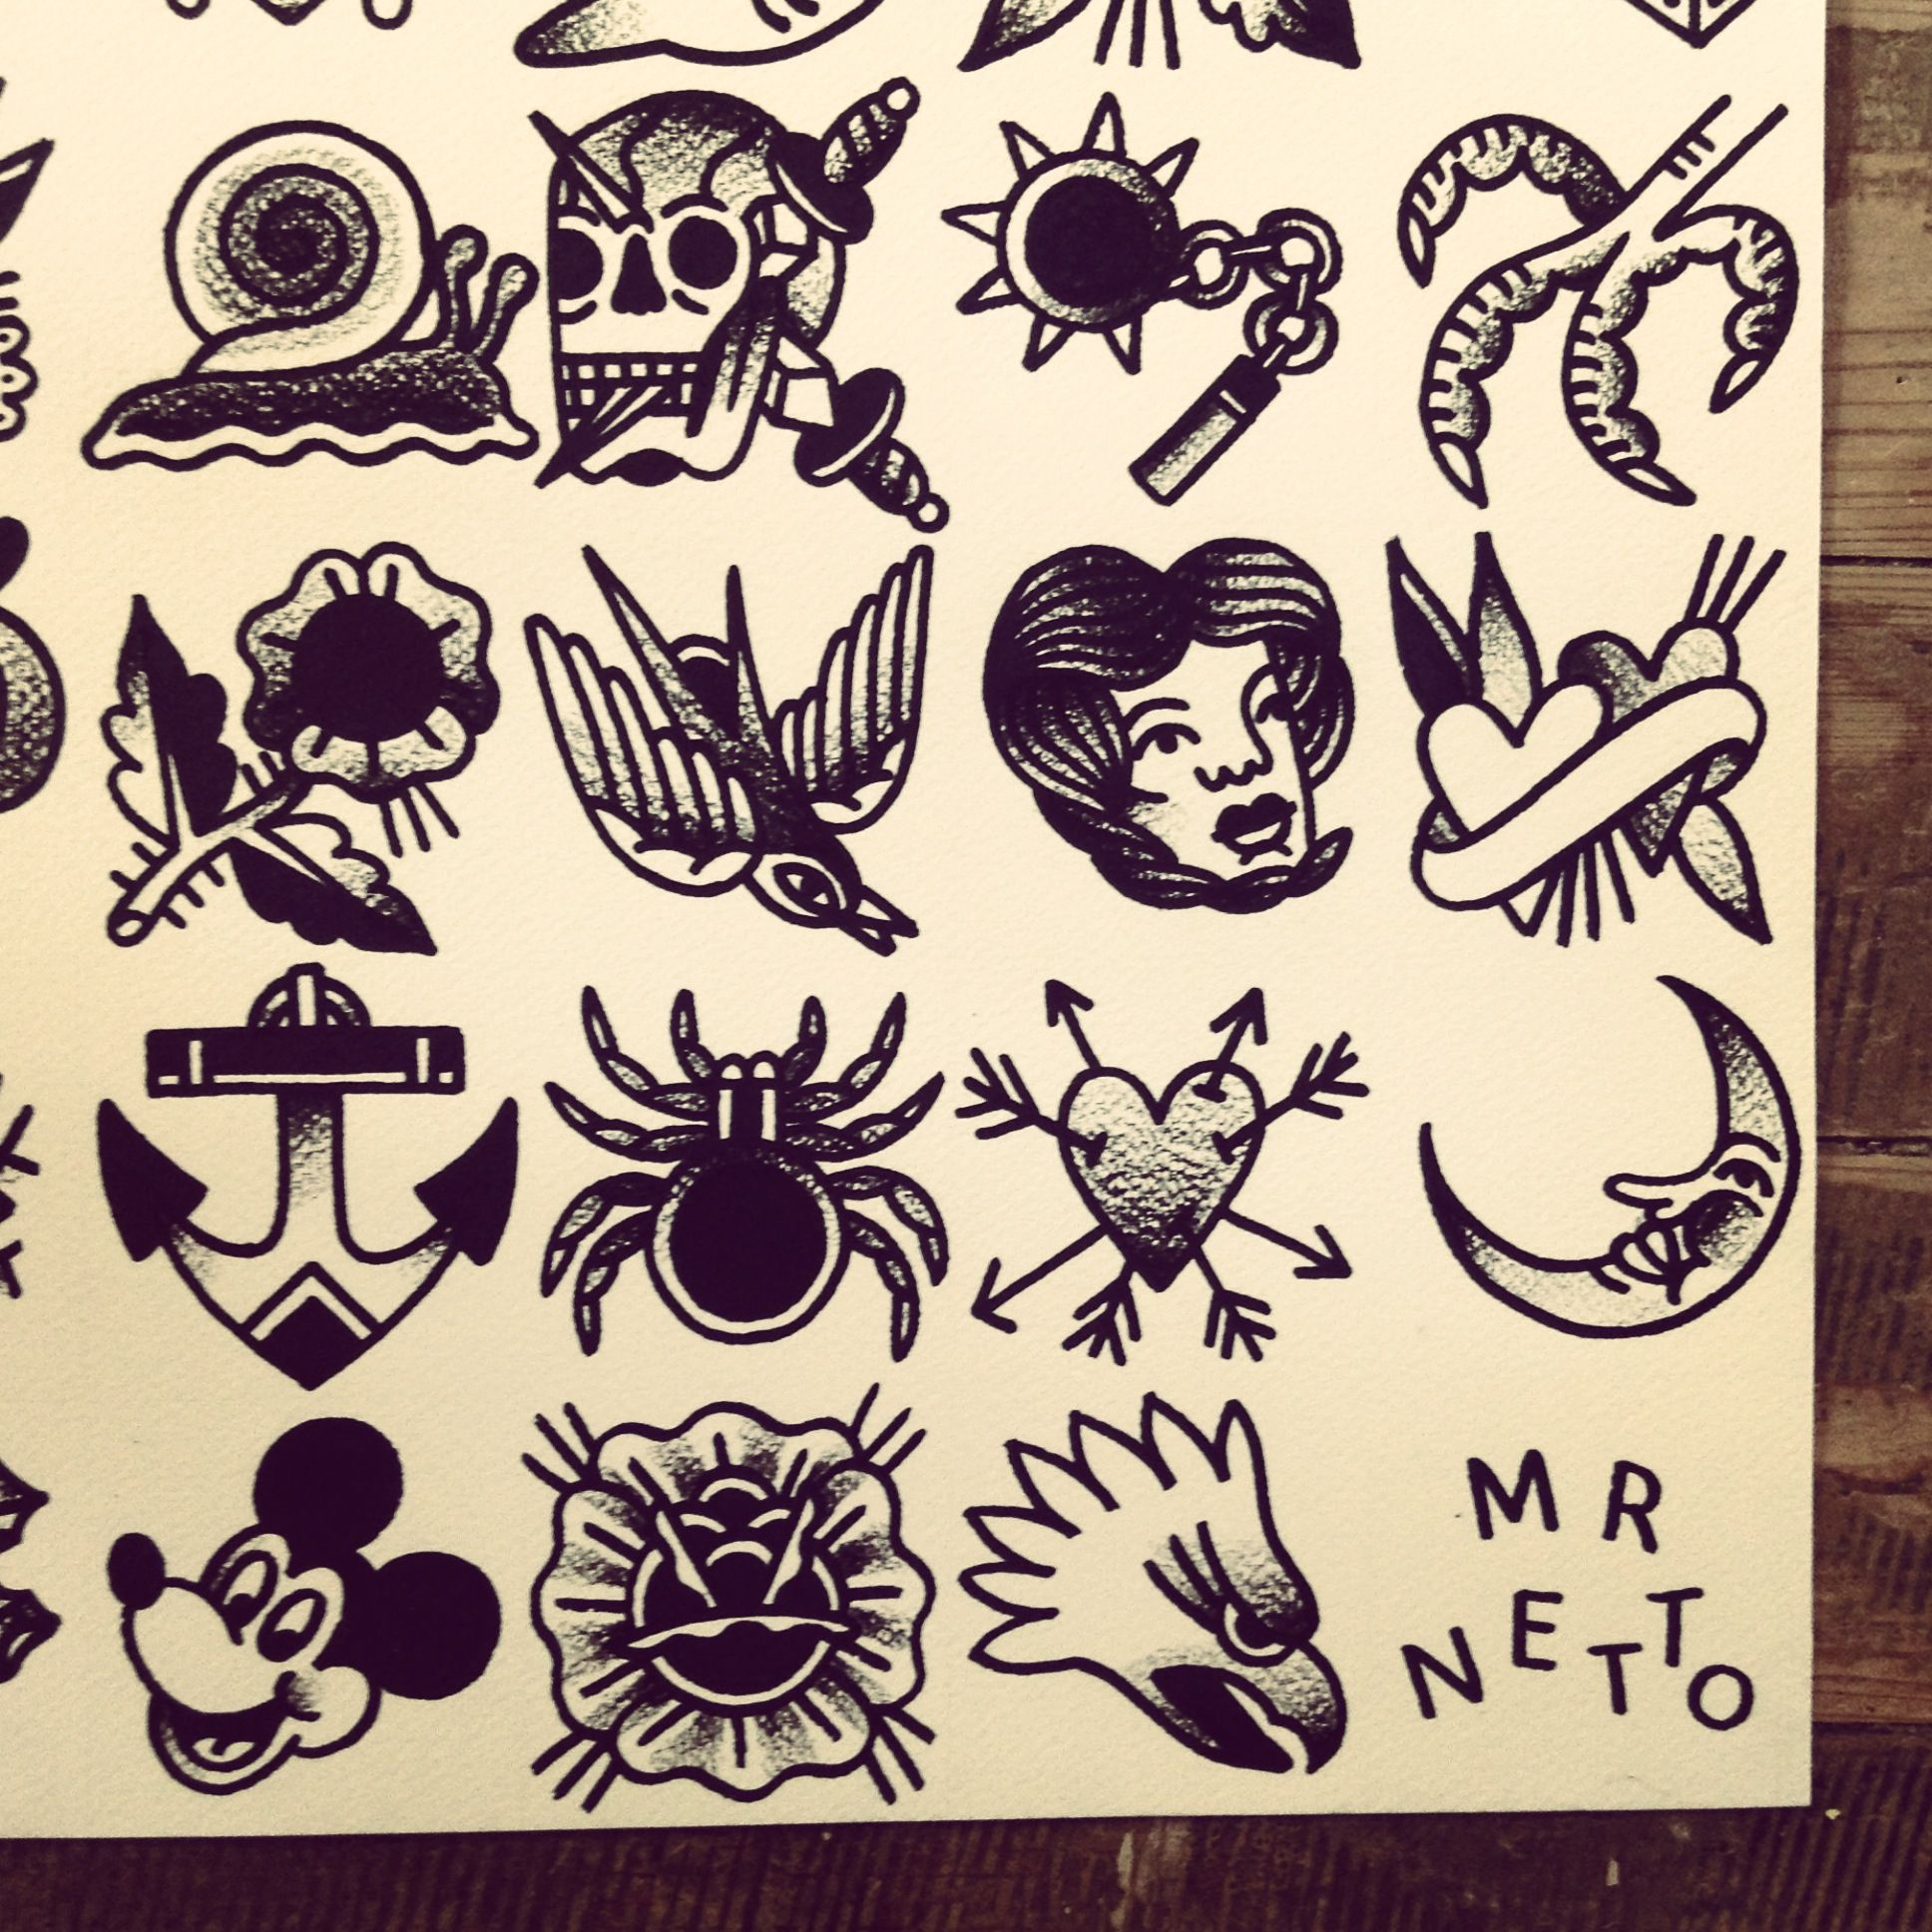 Tattoo Flash By Mr Levi Netto All Designs Are 7 X 7 Cm 35 Tip